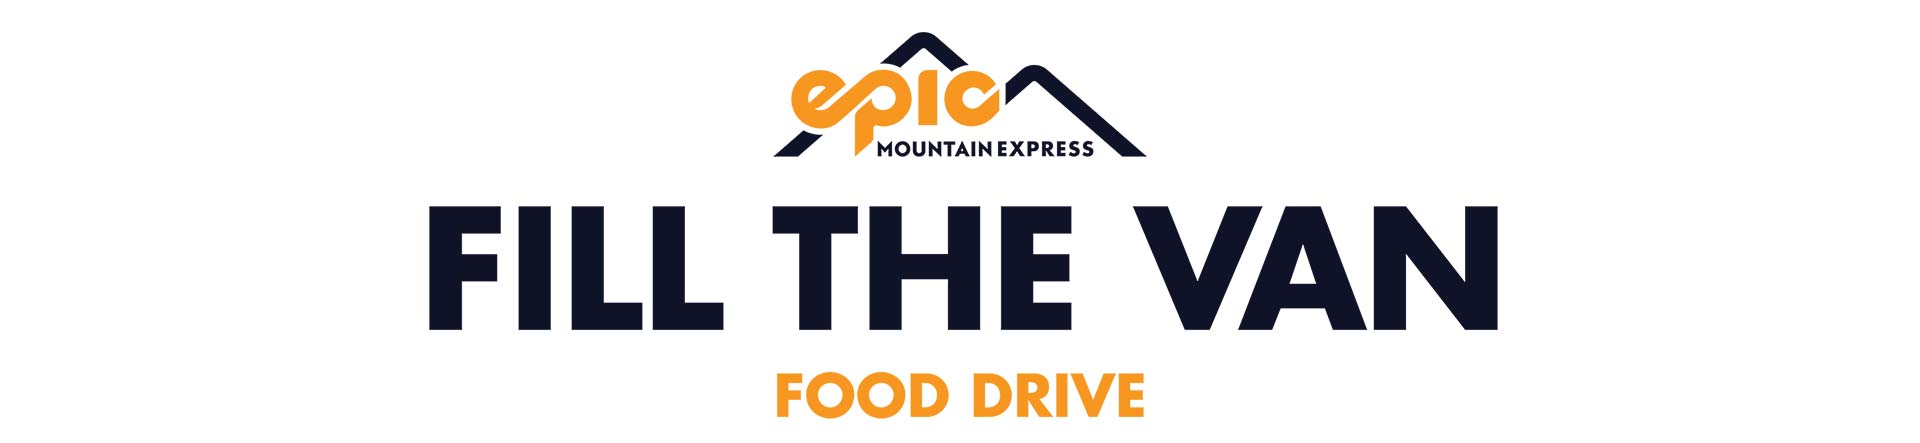 1920x800 fill the van for Epic Mountain Express